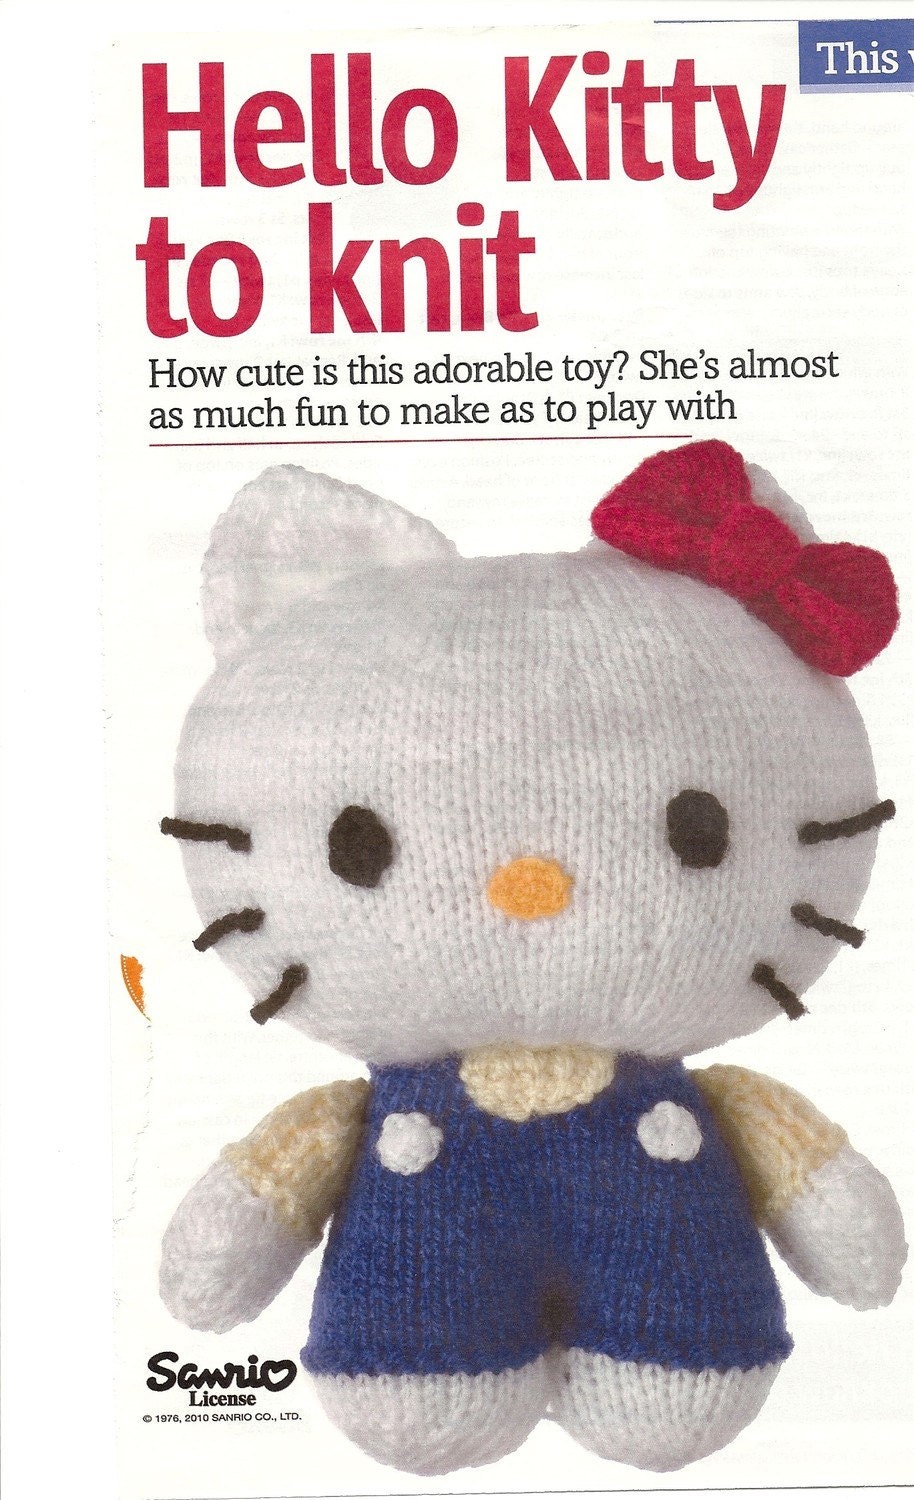 Knitting Pattern Hello Kitty : Knitting pattern Hello kitty toy